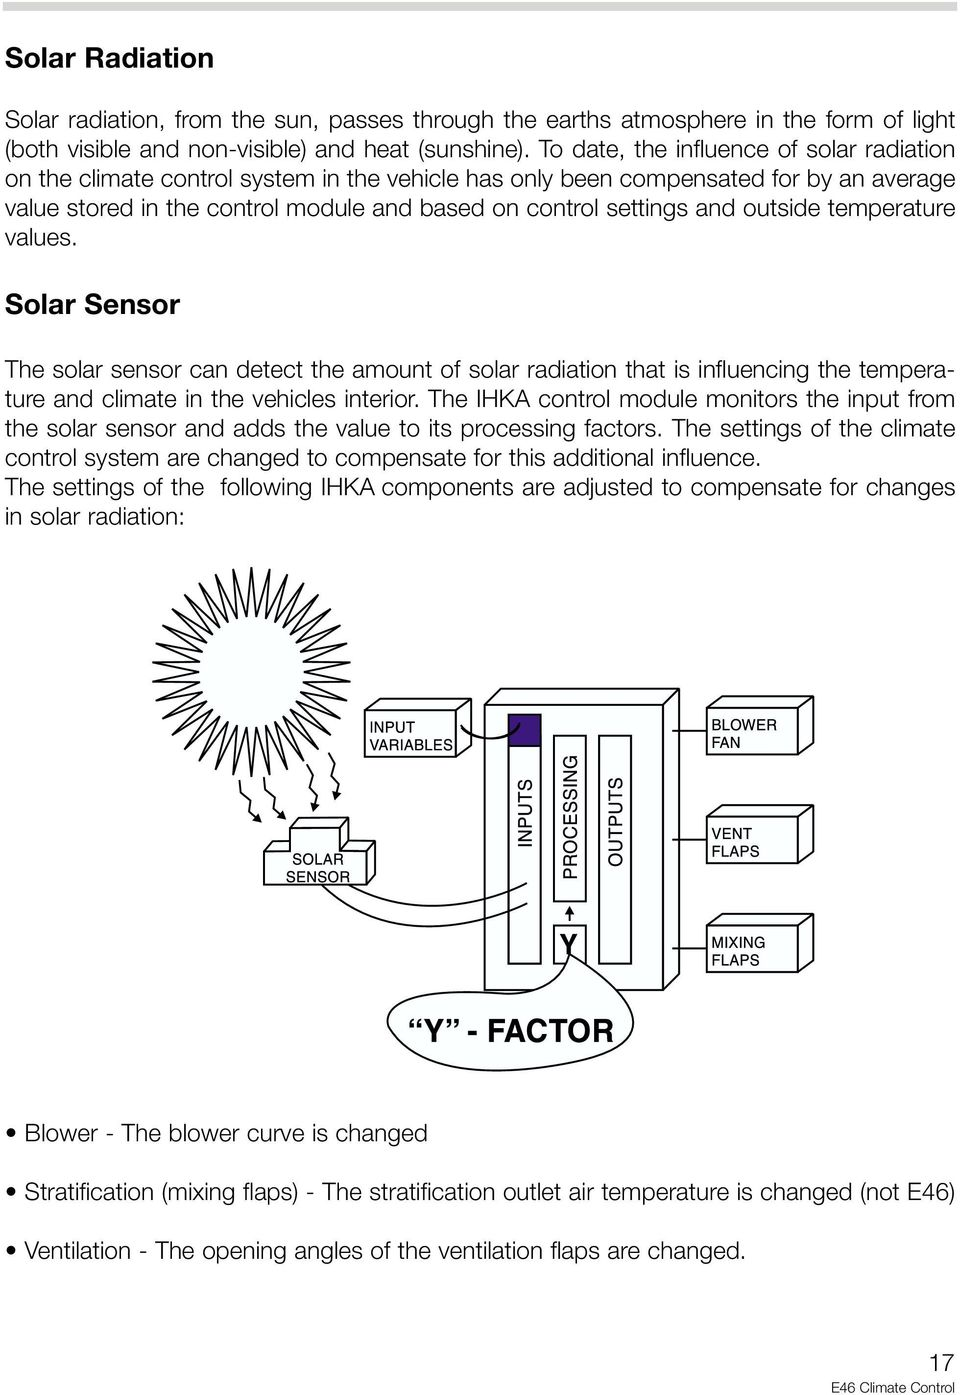 hight resolution of outside temperature values solar sensor the solar sensor can detect the amount of solar radiation